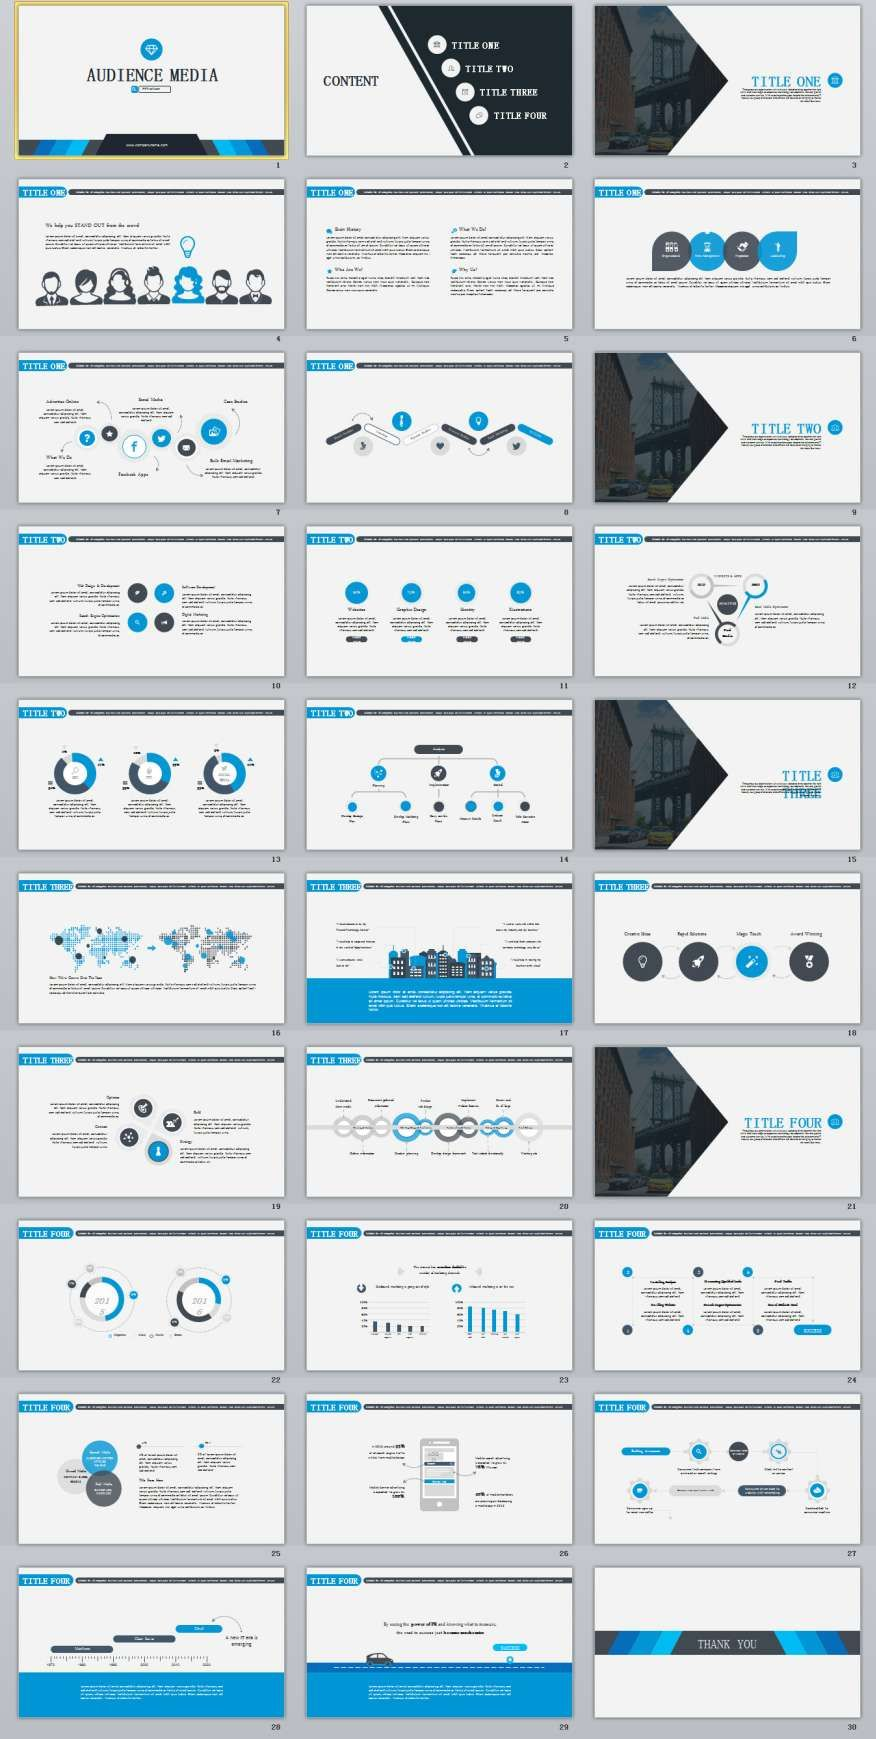 30 media industry powerpoint template pinterest 30 media industry powerpoint template the highest quality powerpoint templates and keynote templates download toneelgroepblik Image collections